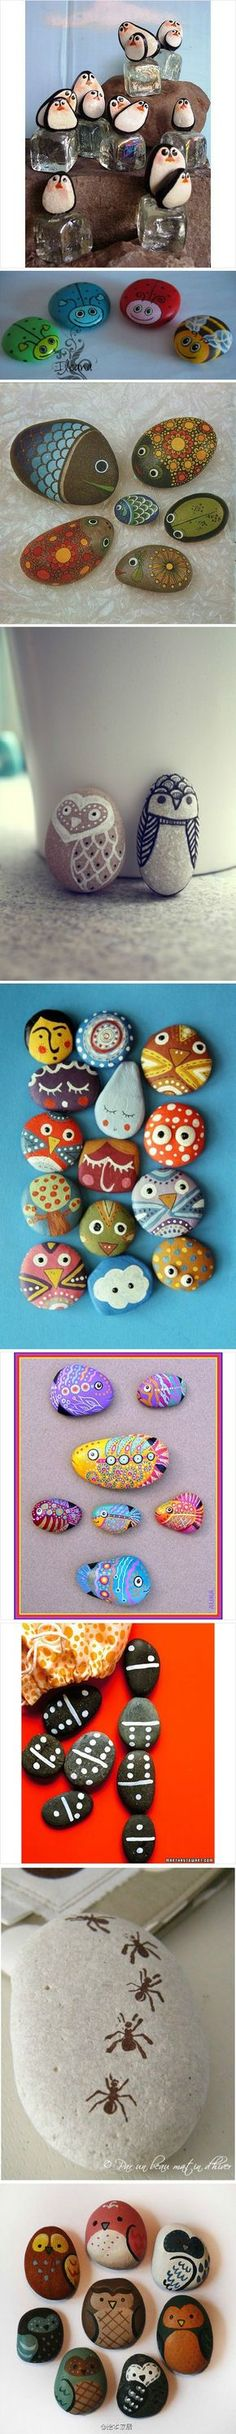 painted pebbles: would look great in the flower beds.  A place to show off the kids art!